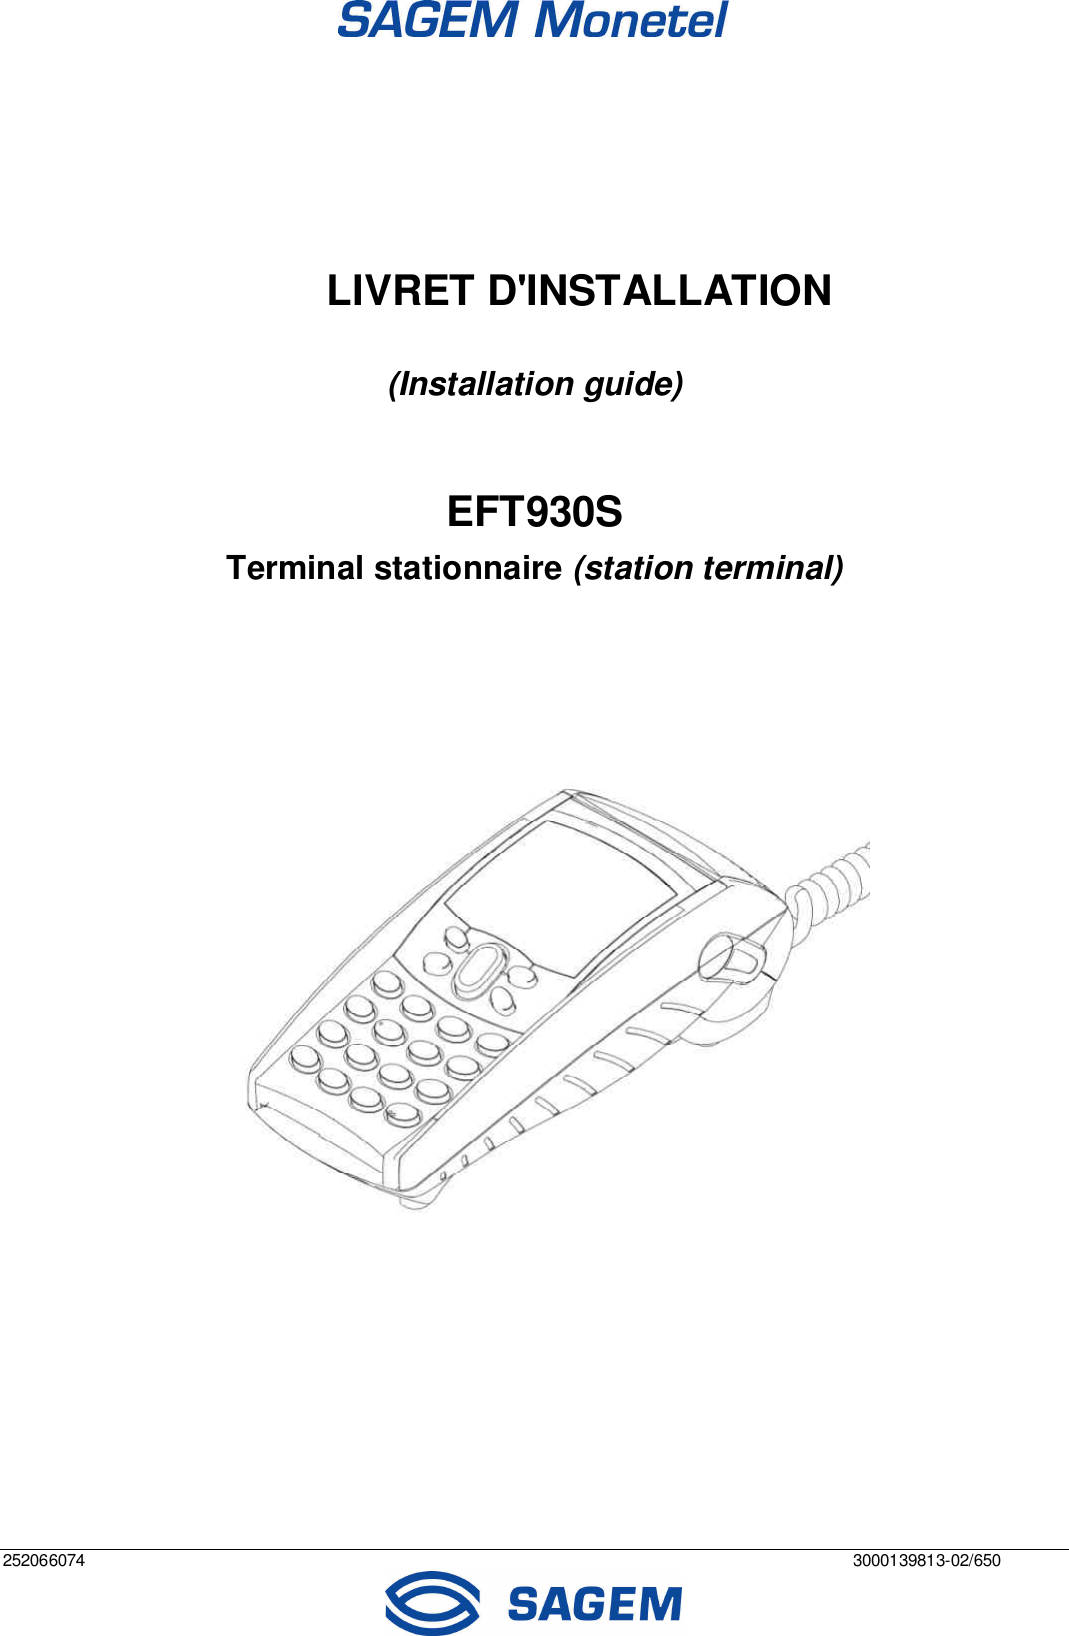 Sagem monetel eft930s user manual.